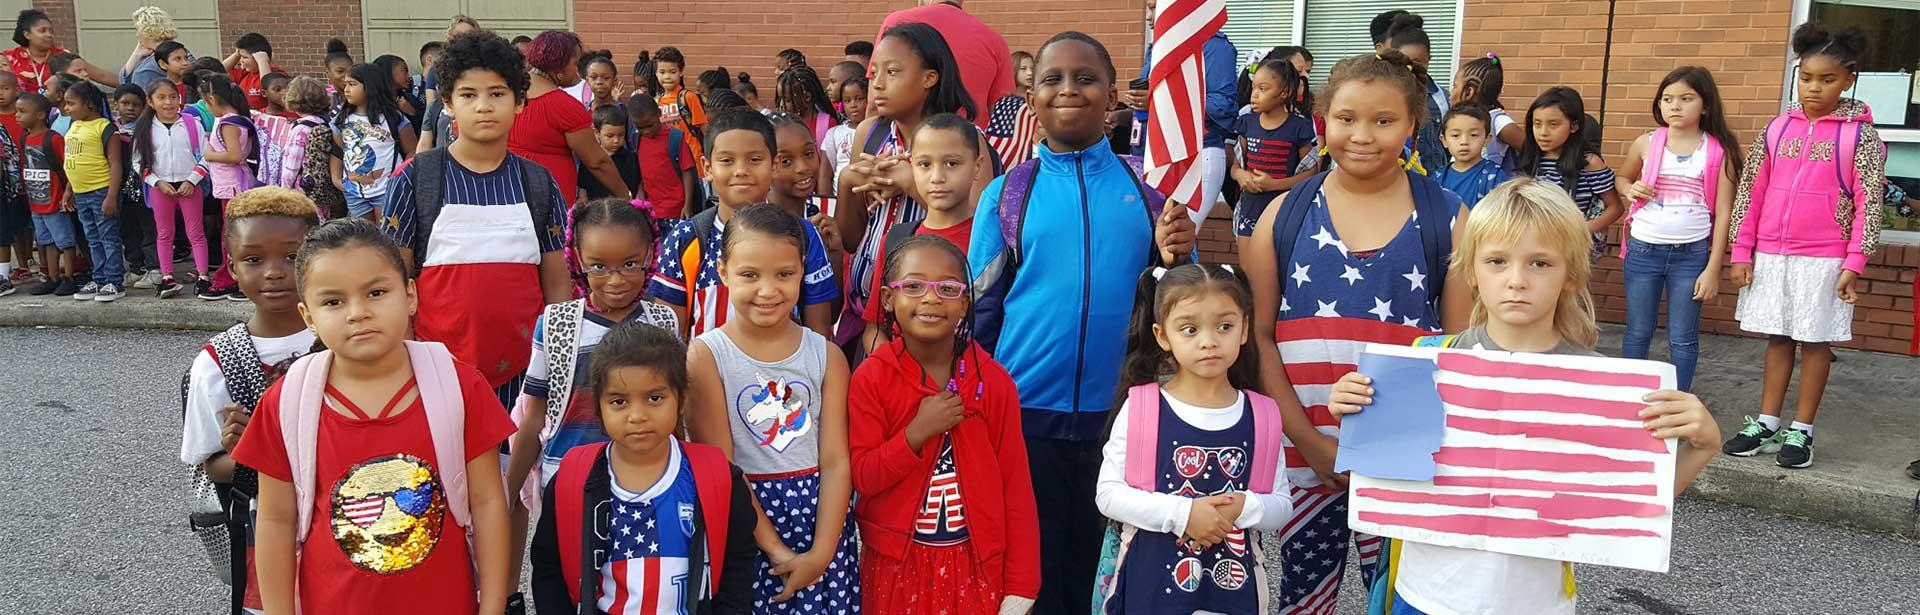 Children in patriotic clothing